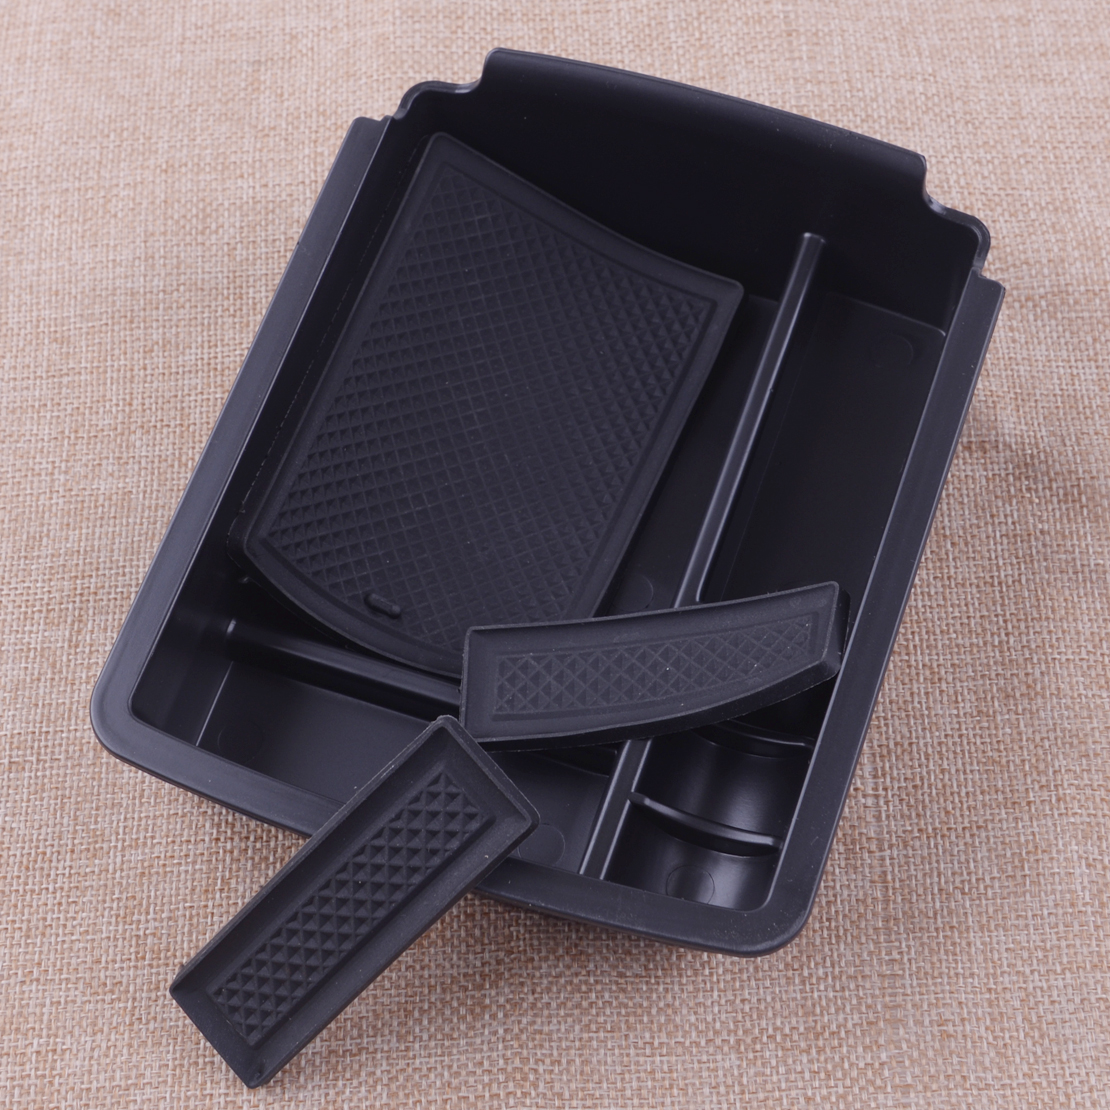 thumbnail 2 - Interior Center Console Armrest Storage Tray Holder Fit for VW Golf 7 MK7 14-18